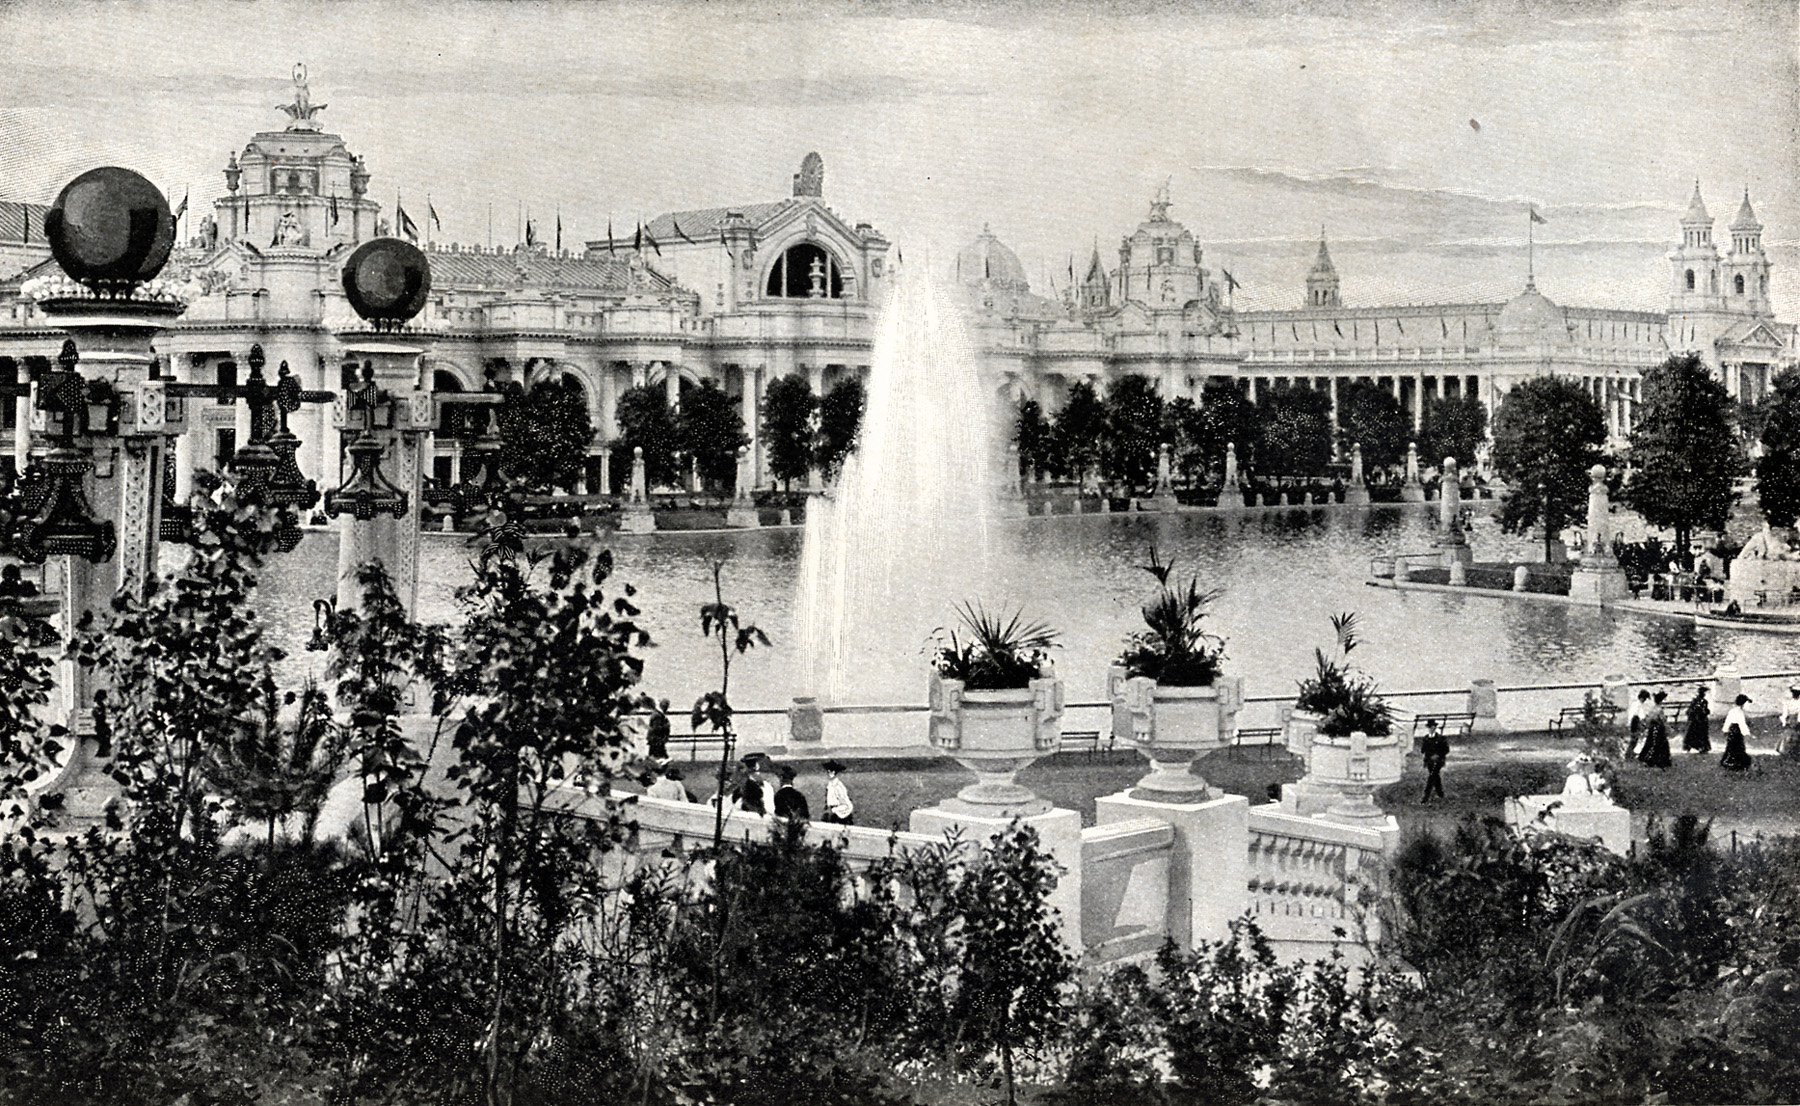 1904 Louisiana Purchase expo